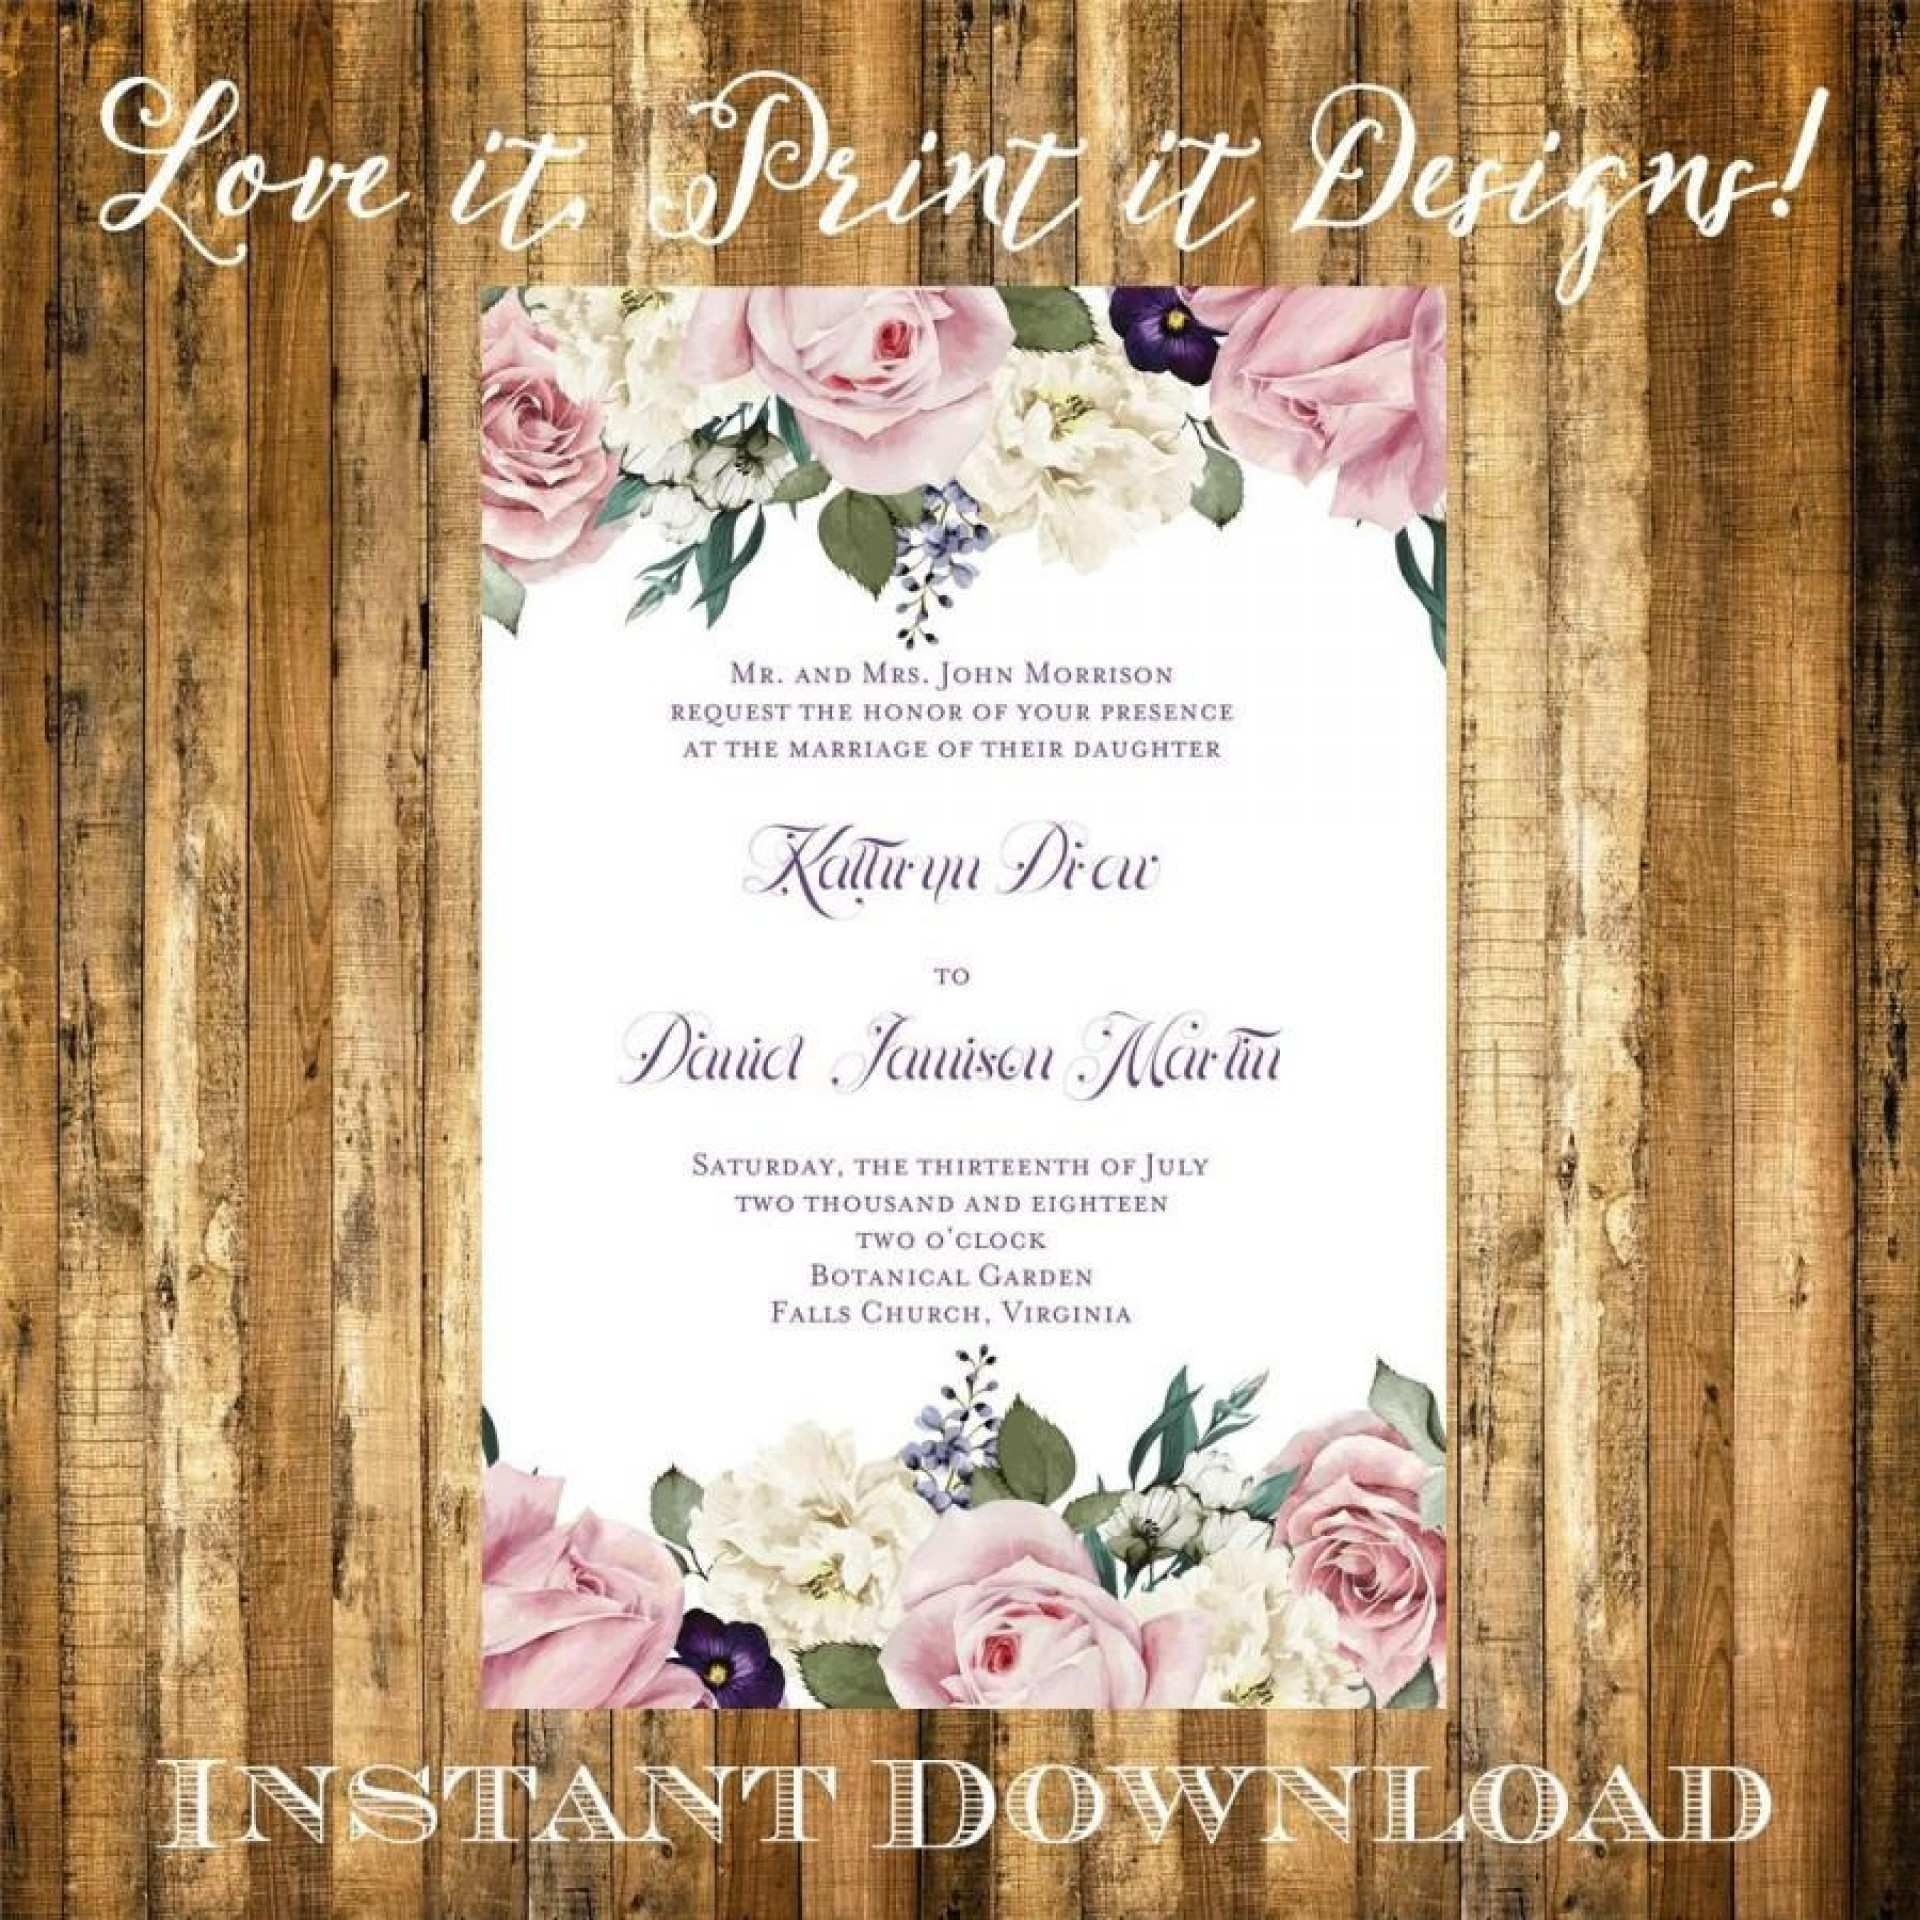 002 Incredible Microsoft Word Wedding Invitation Template Idea  Templates M Editable Free Download Chinese1920